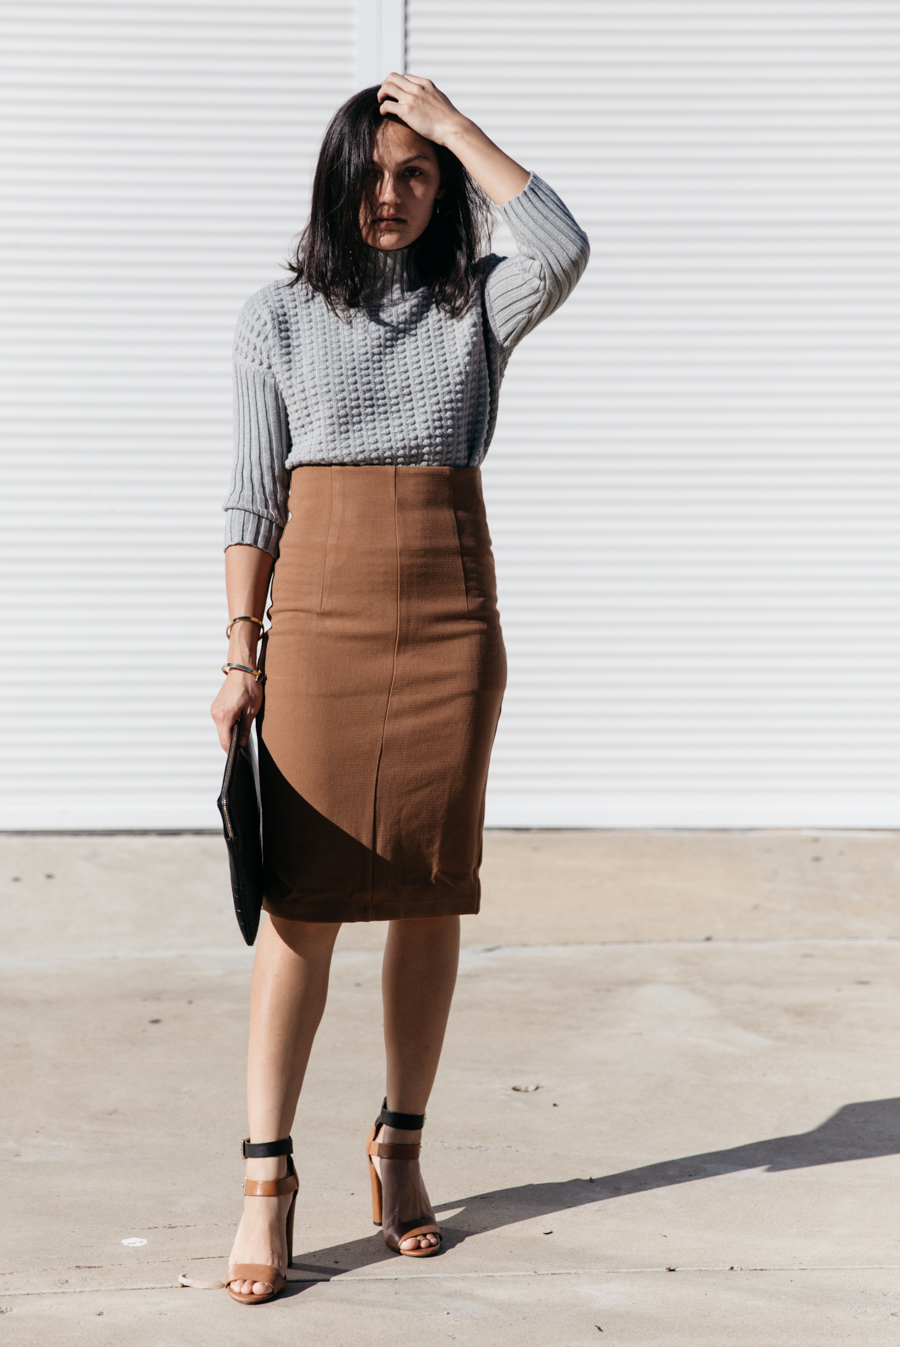 Brown pencil skirt outfit.